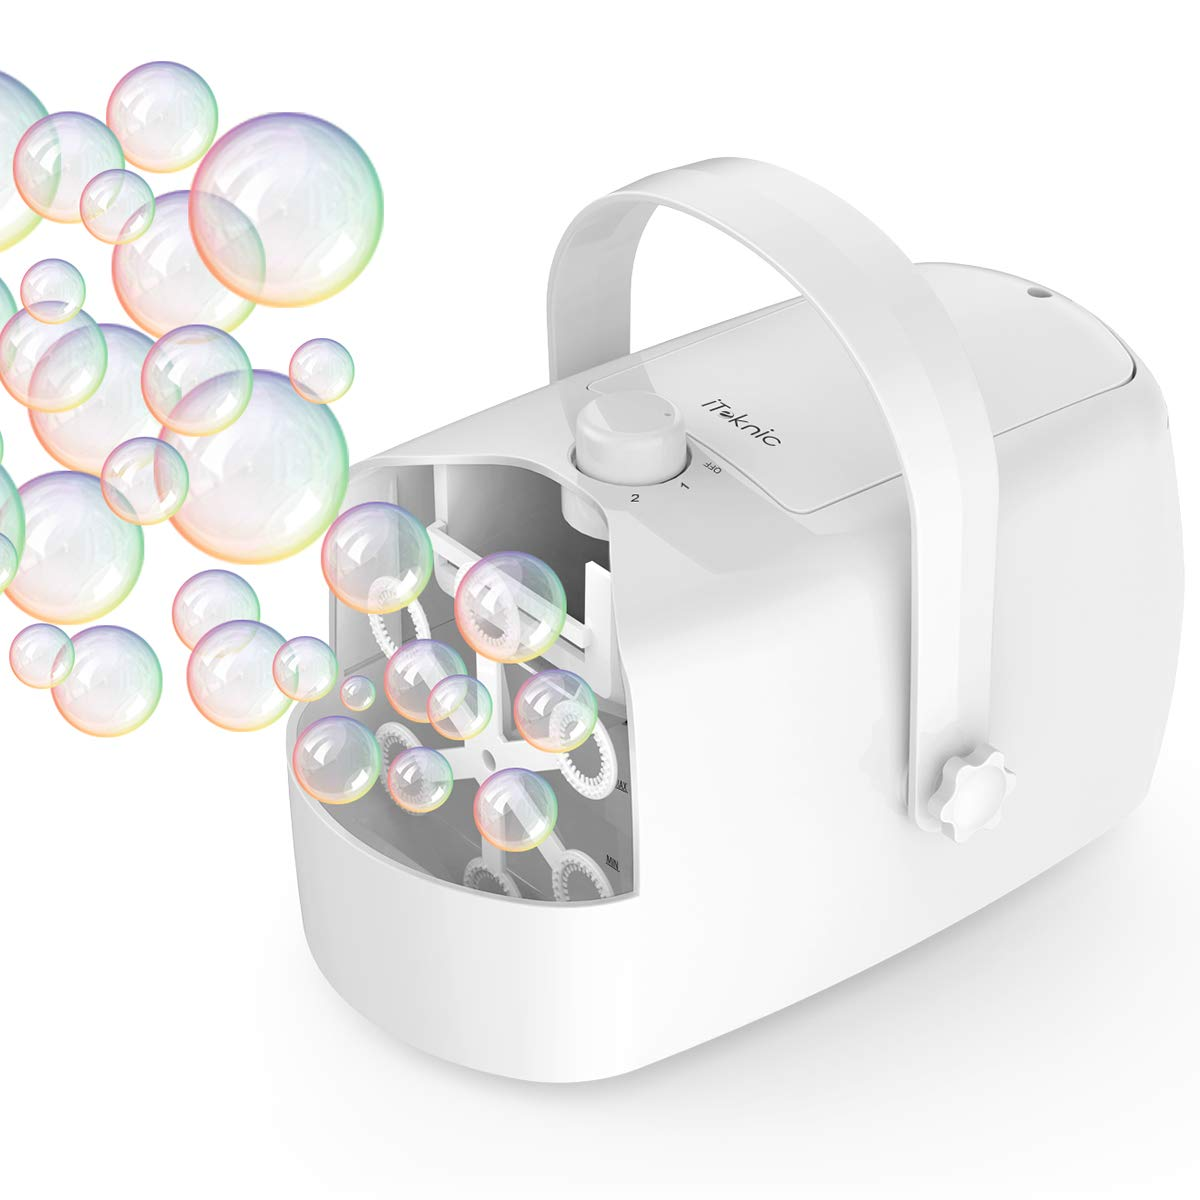 Bubble Machine, iTeknic Automatic Bubble Blower, Portable Auto Bubble Maker with High Output for Outdoor/Indoor Use,Powered by Plug-in or Batteries , Bubble Toys and Gifts for Kids Girls Boys (White) by iTeknic